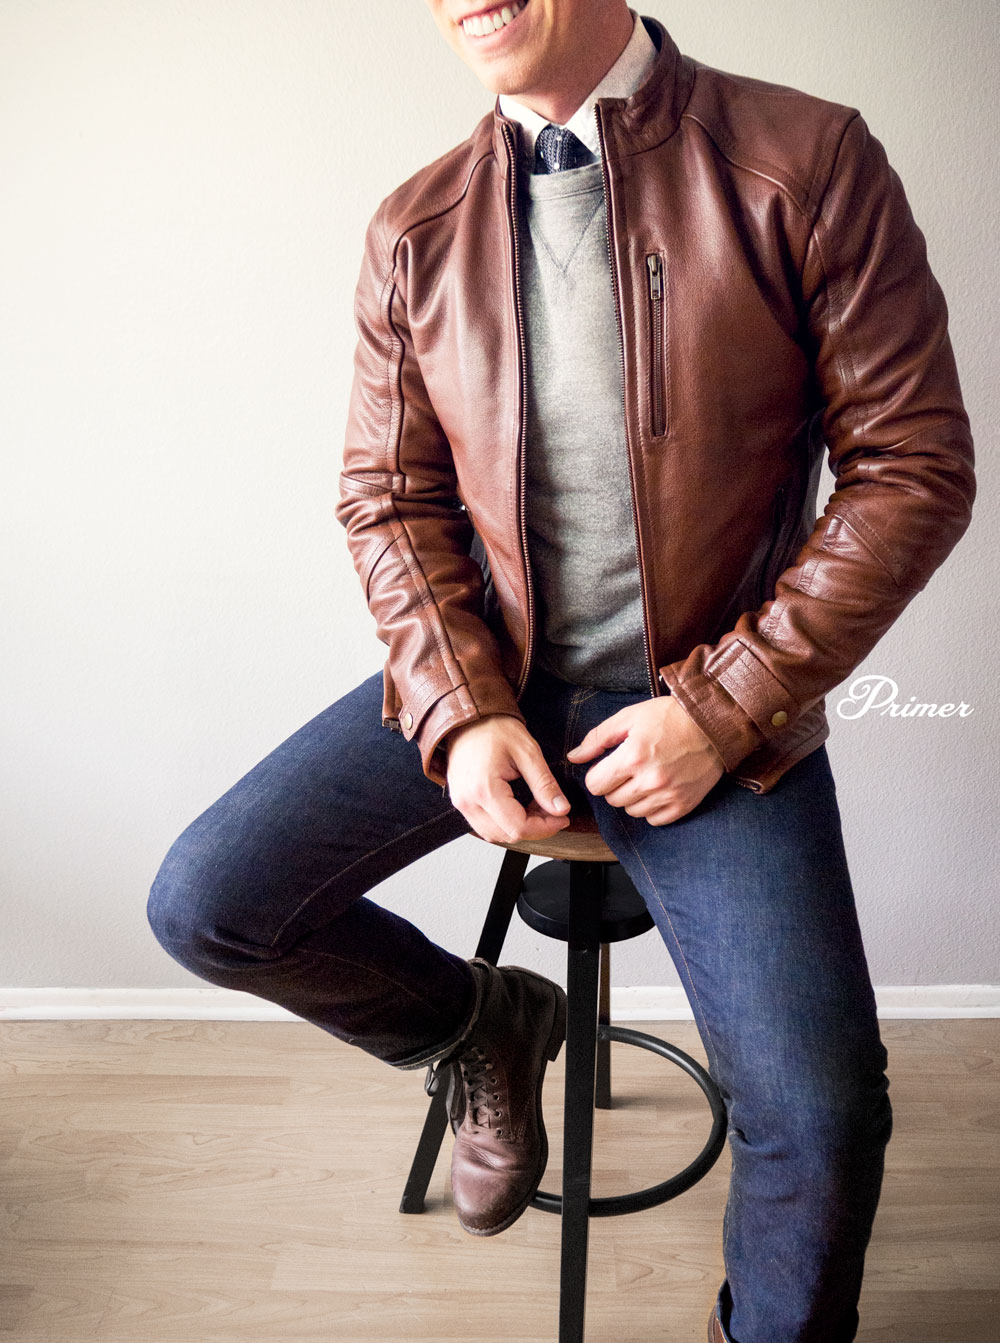 Fall Style Inspiration - Leather jacket with Tie